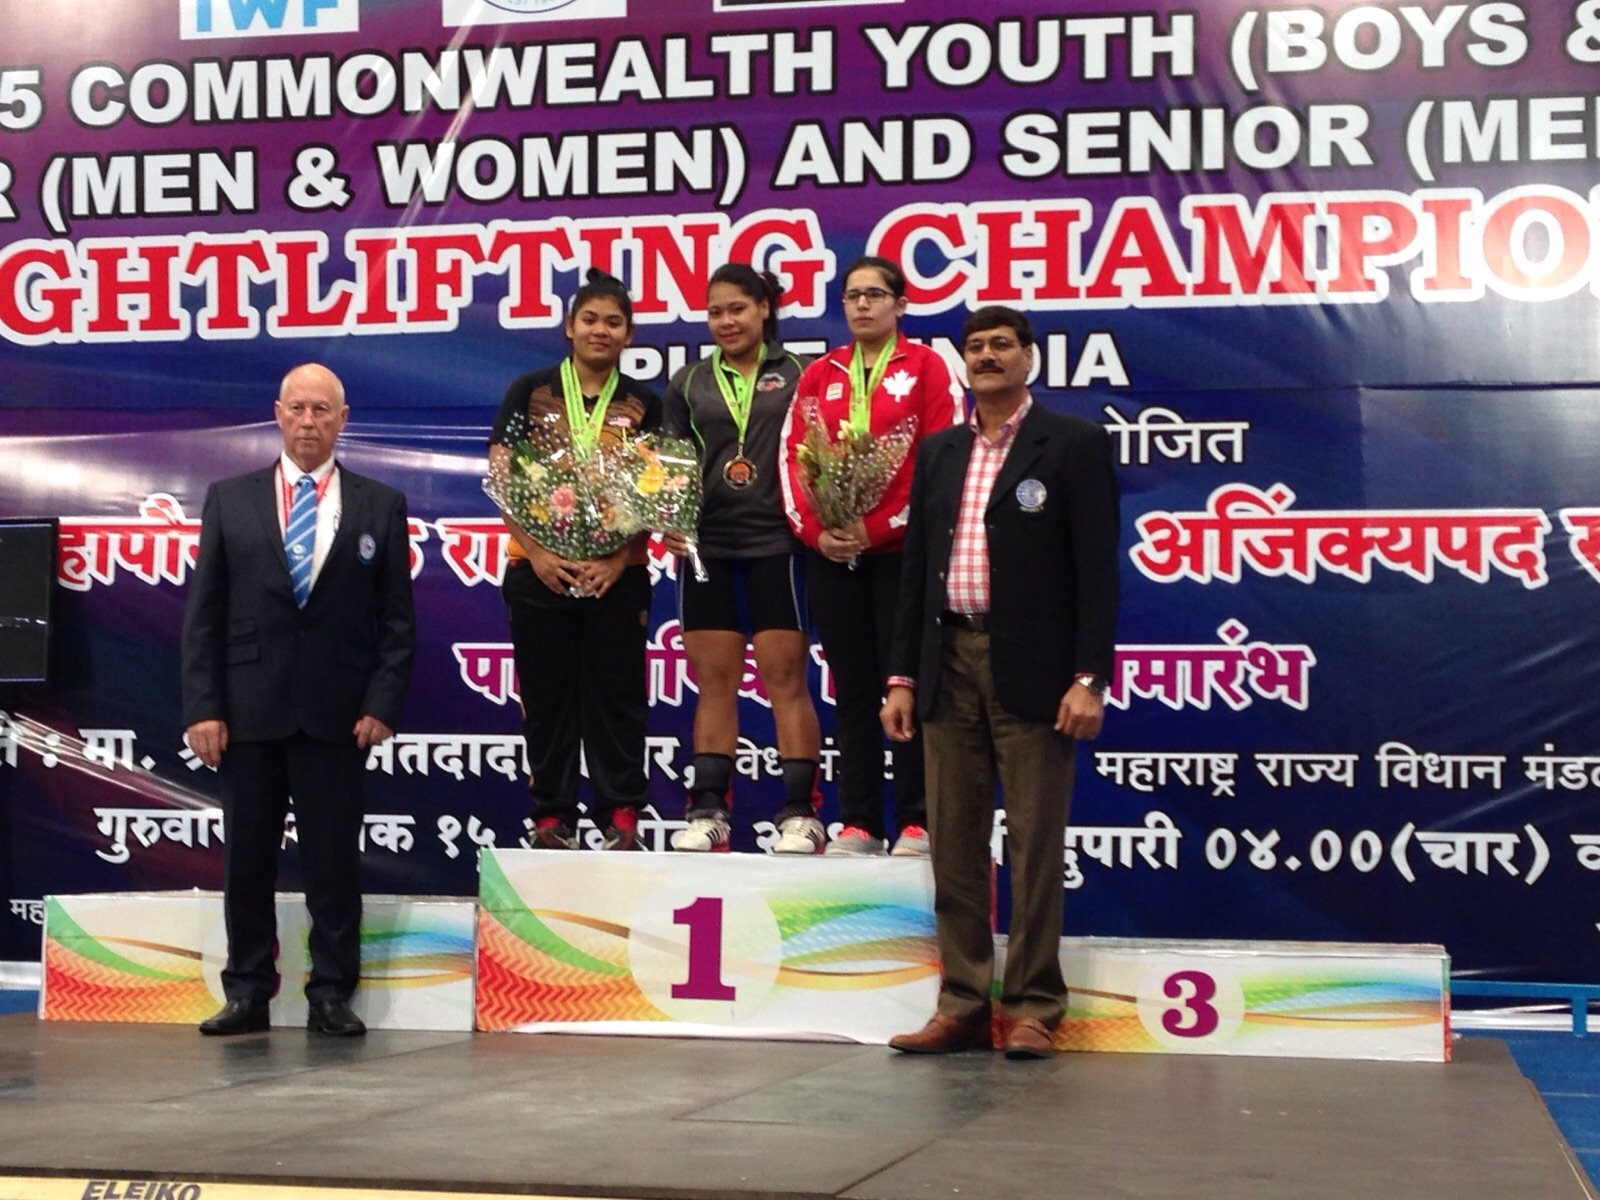 COMMONWEALTH YOUTH GAMES DI INDIA PD 12.10.15